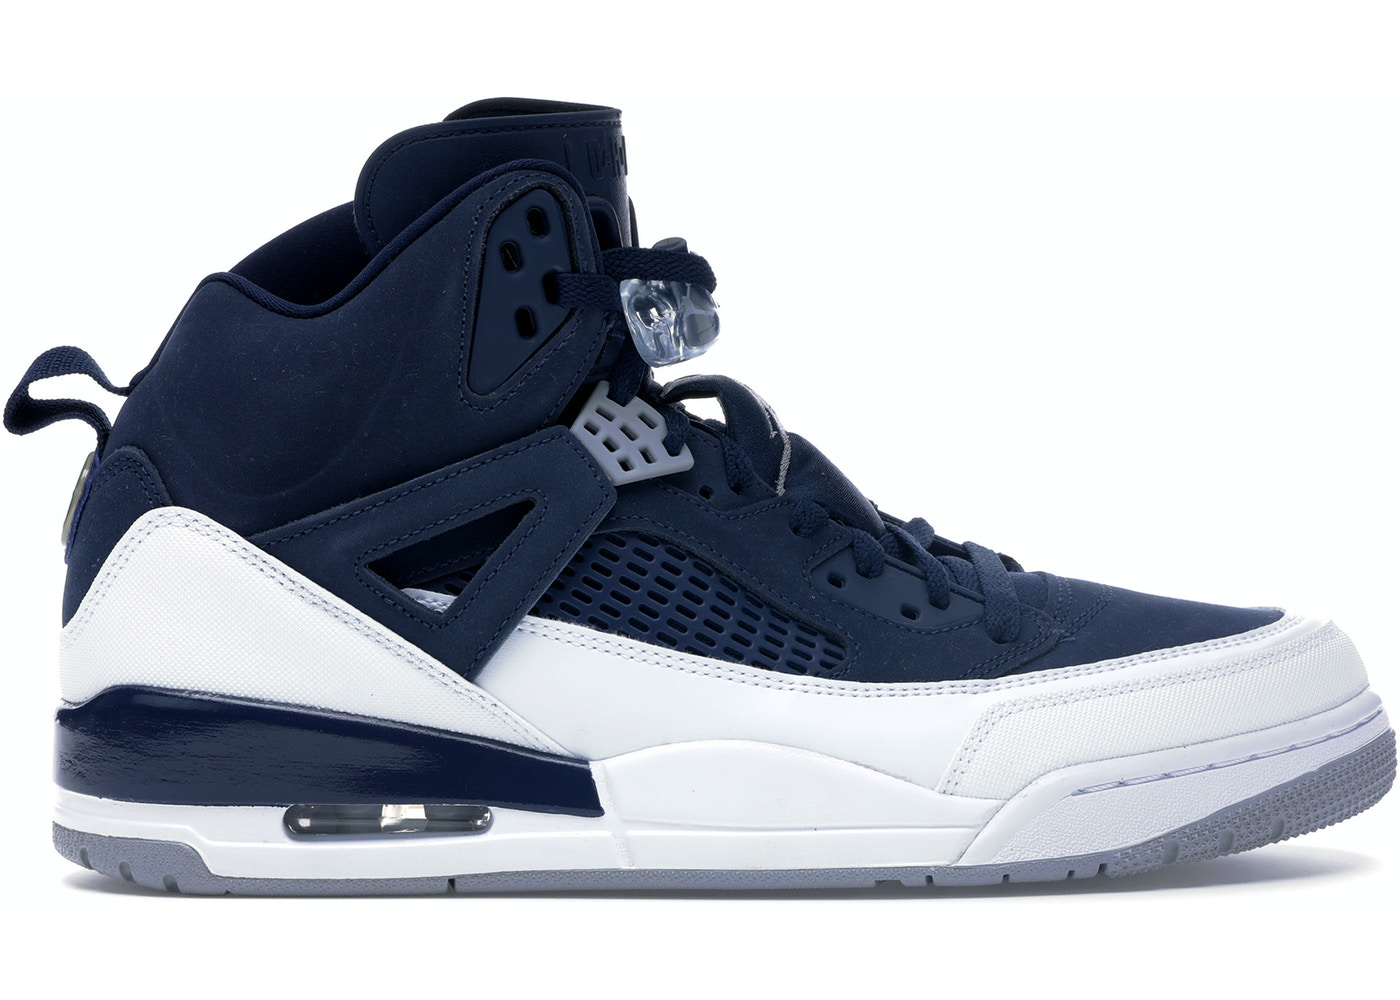 54e62911c652 Jordan Spizike Midnight Navy - 315371-406